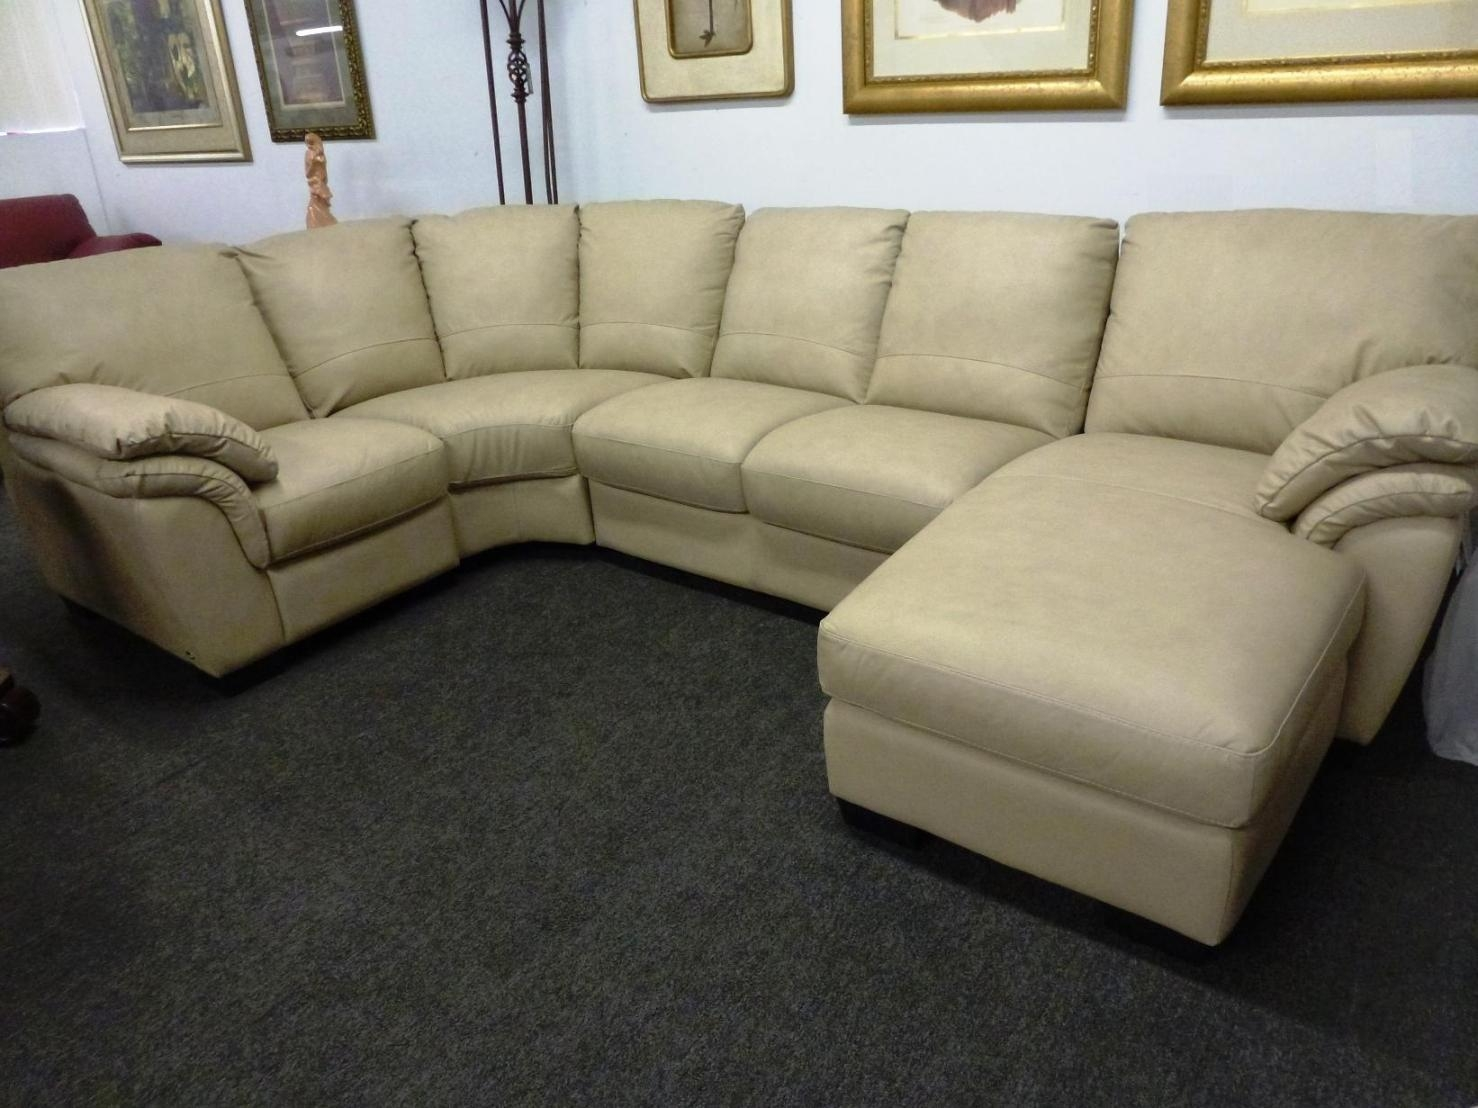 Natuzzi Leather Sofa For Sale | Tehranmix Decoration regarding Natuzzi Microfiber Sectional Sofas